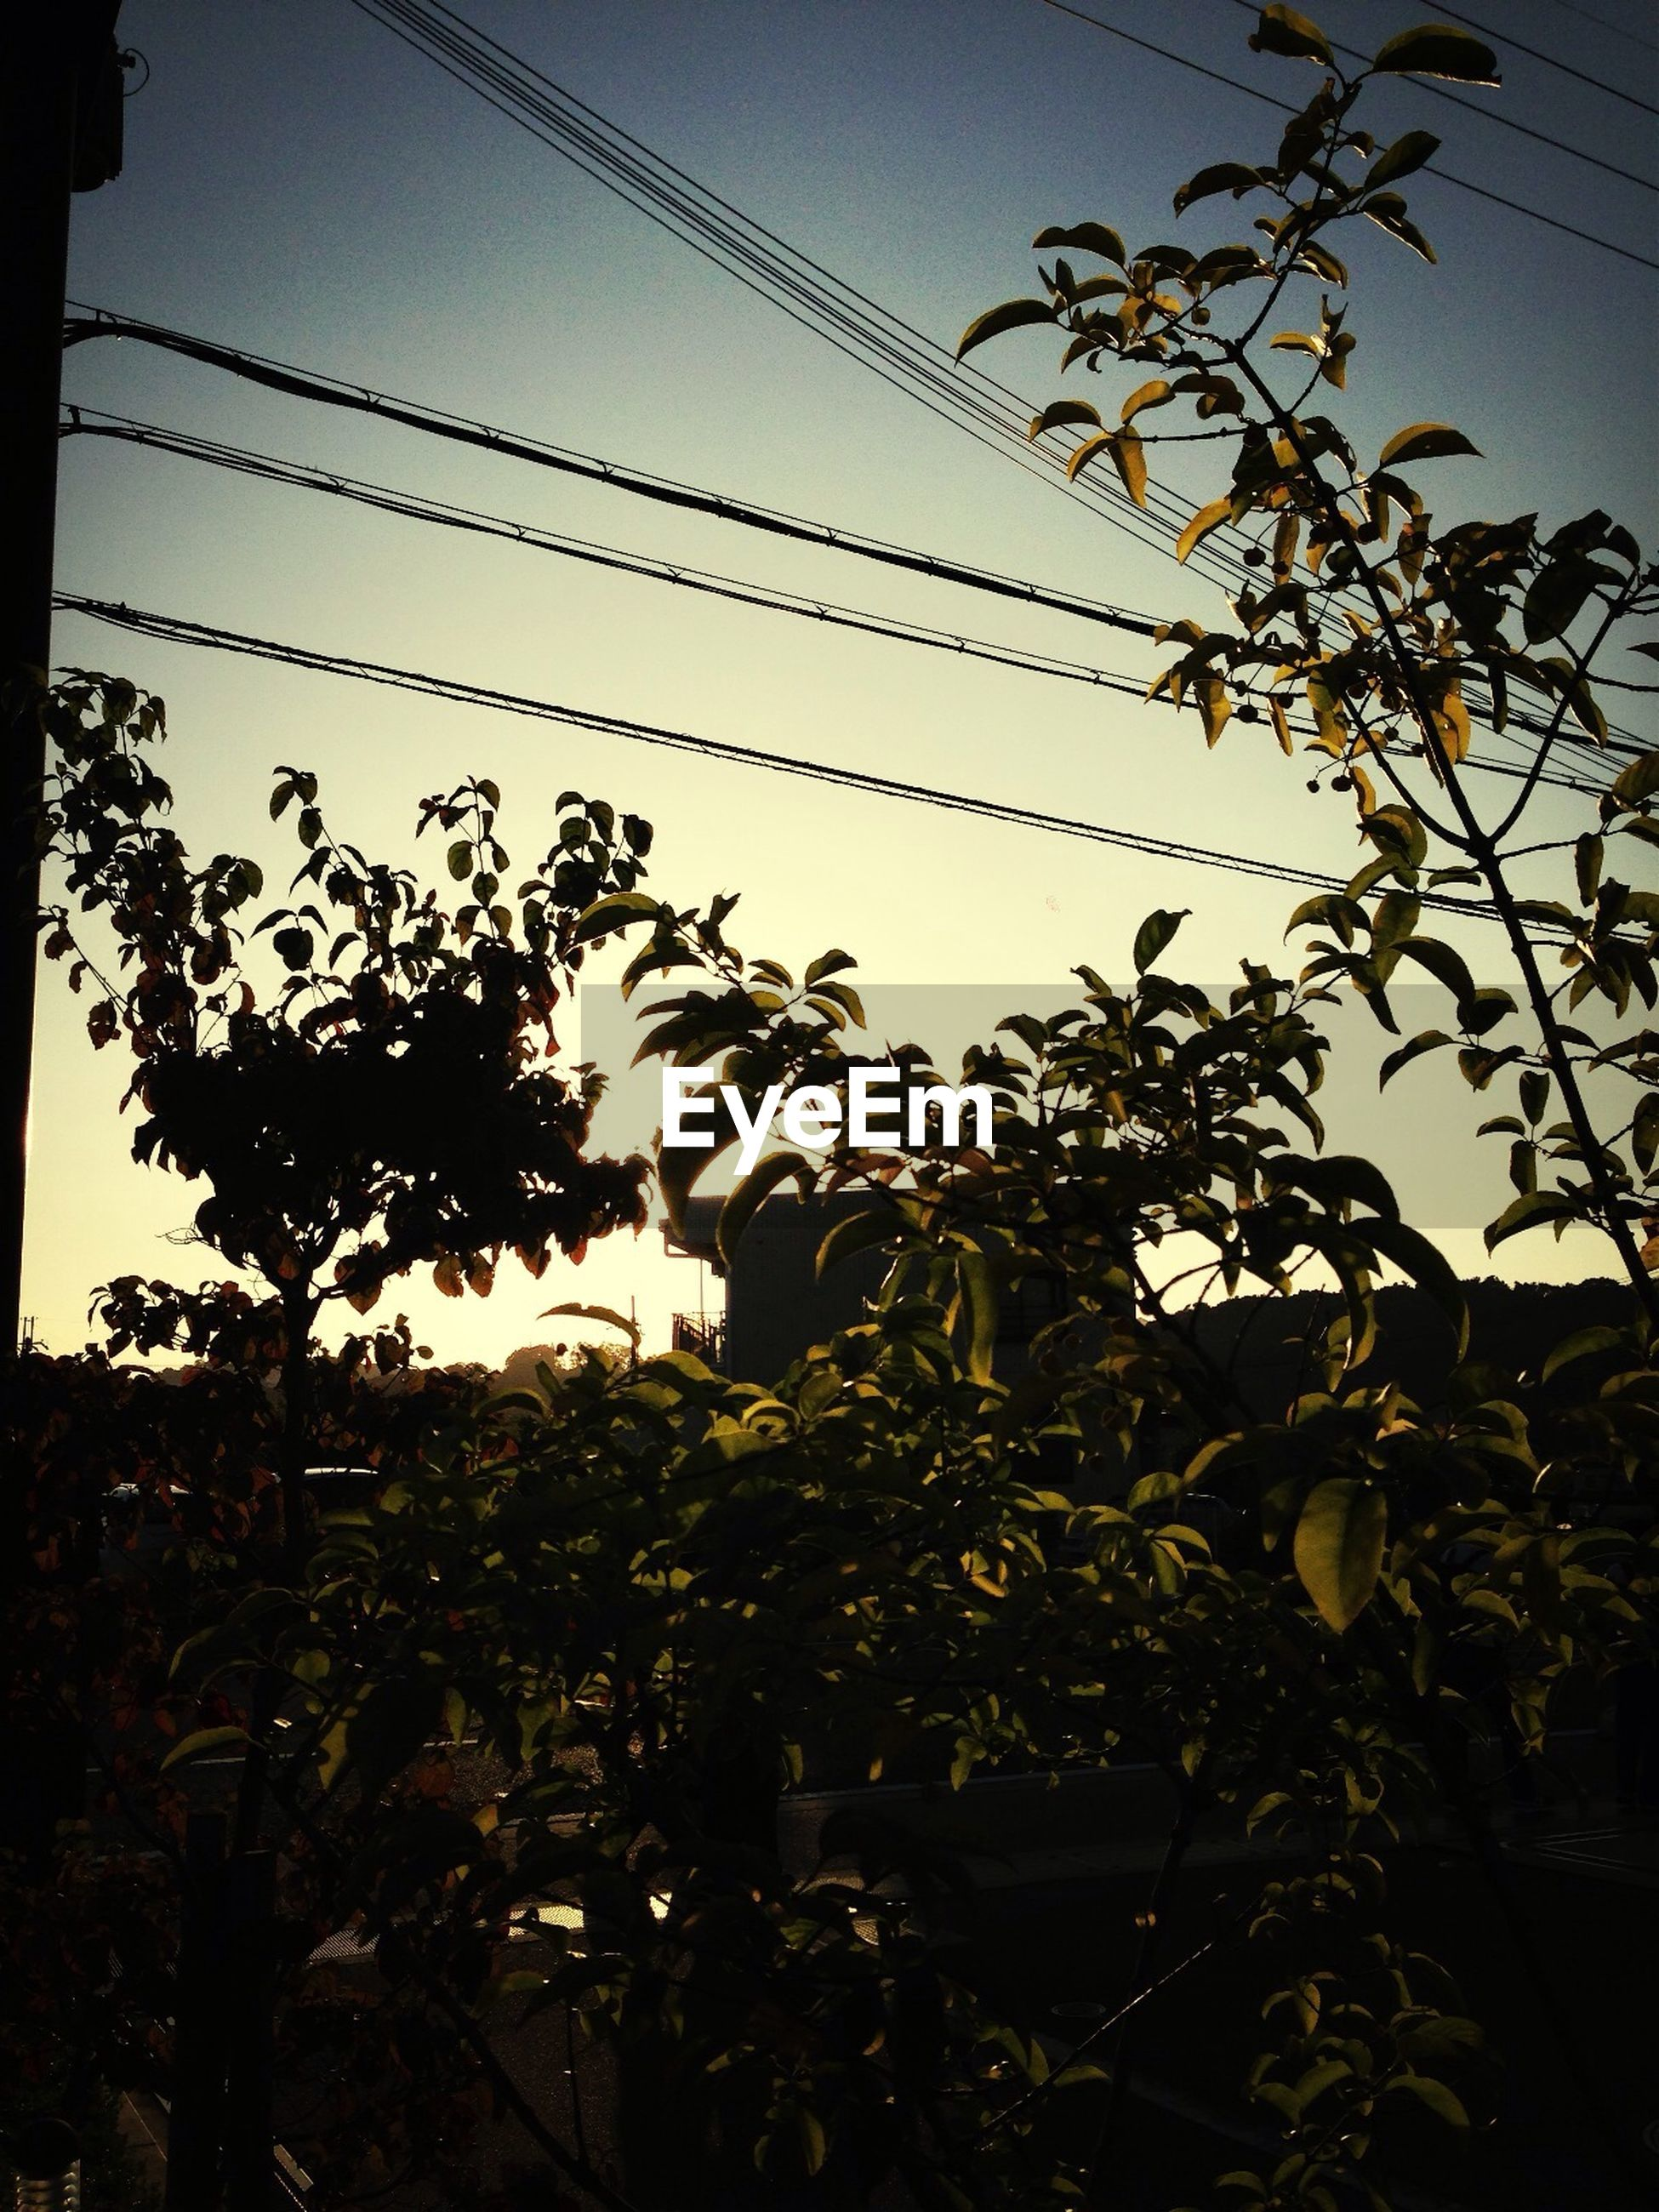 growth, clear sky, low angle view, plant, silhouette, tree, sky, power line, nature, leaf, branch, beauty in nature, flower, dusk, no people, outdoors, electricity pylon, cable, tranquility, stem